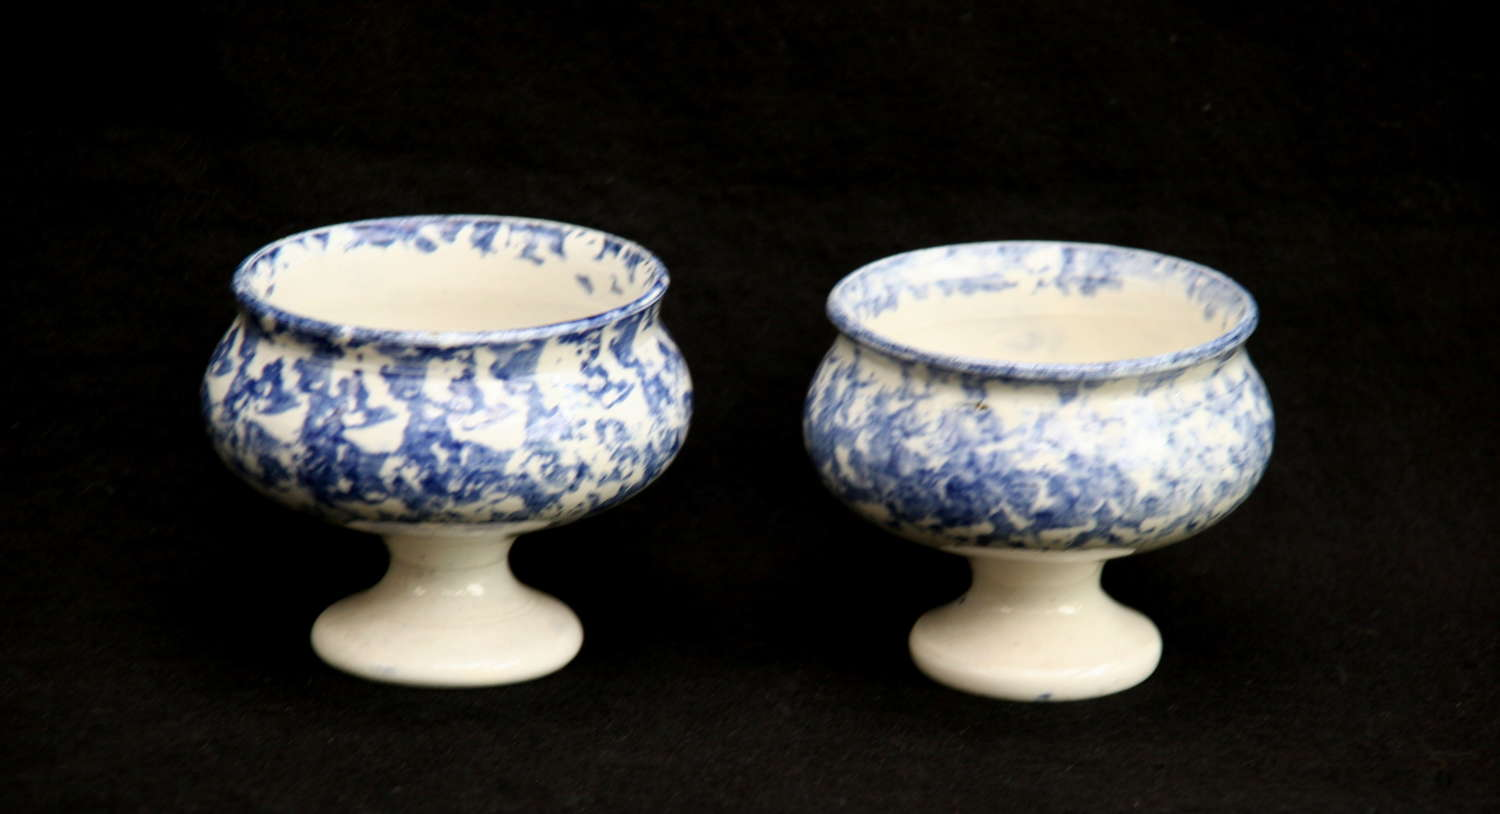 Two Blue and white English Pottery Victorian Salt Pots